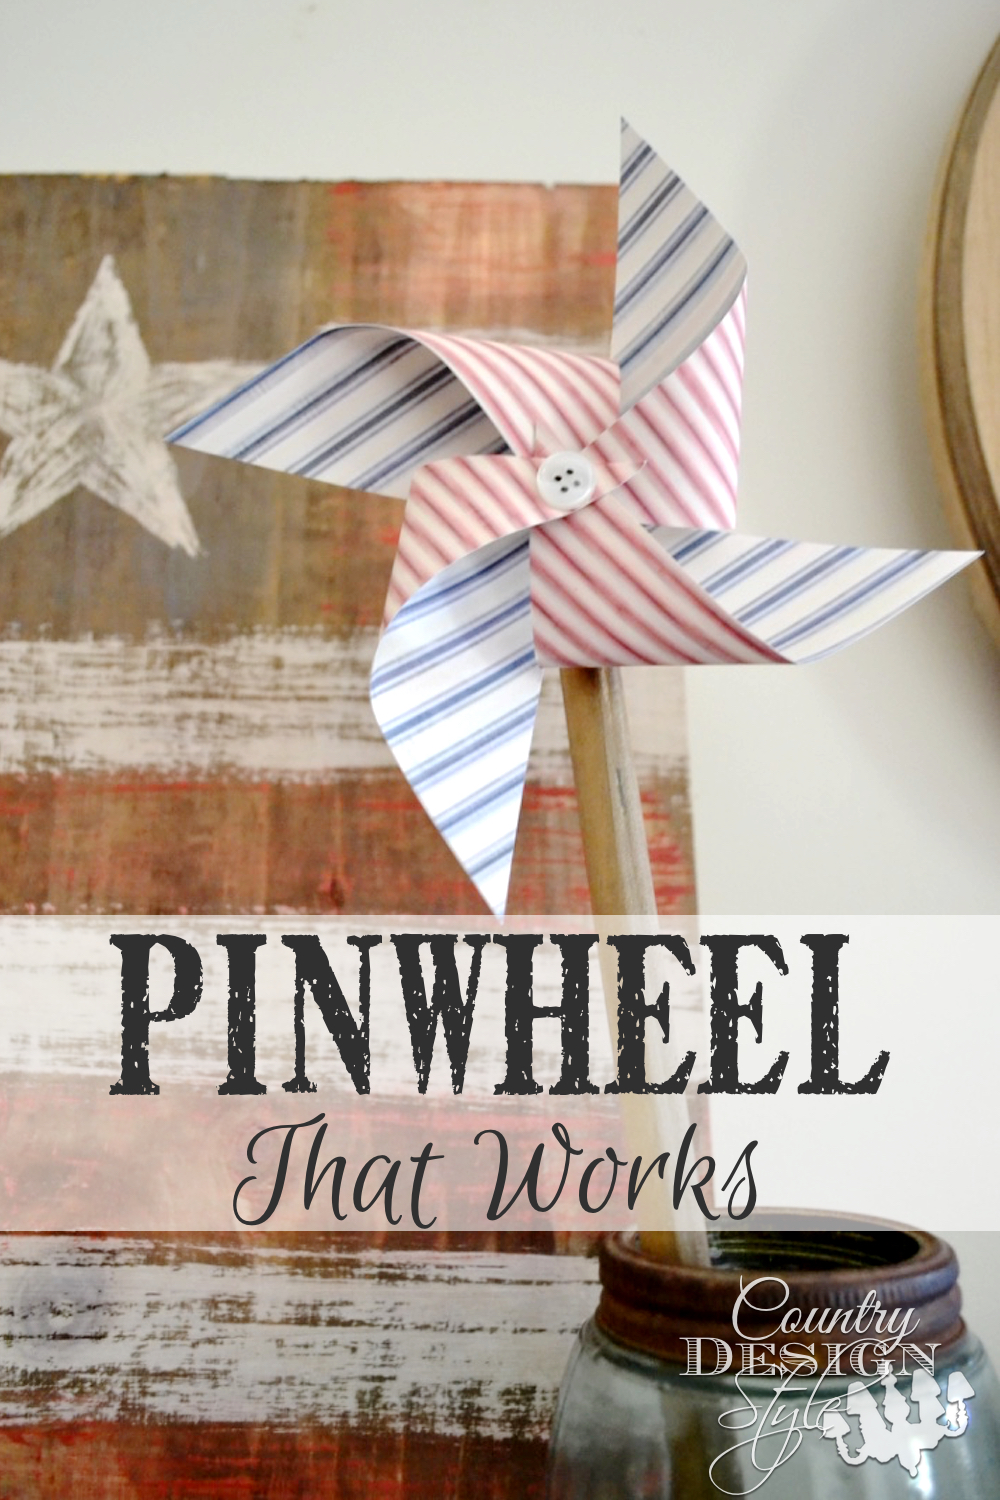 Are you adoring pinwheels? I figured out simple ways to make one that works. A fun and quick DIY project with farmhouse appeal. Country Design Style